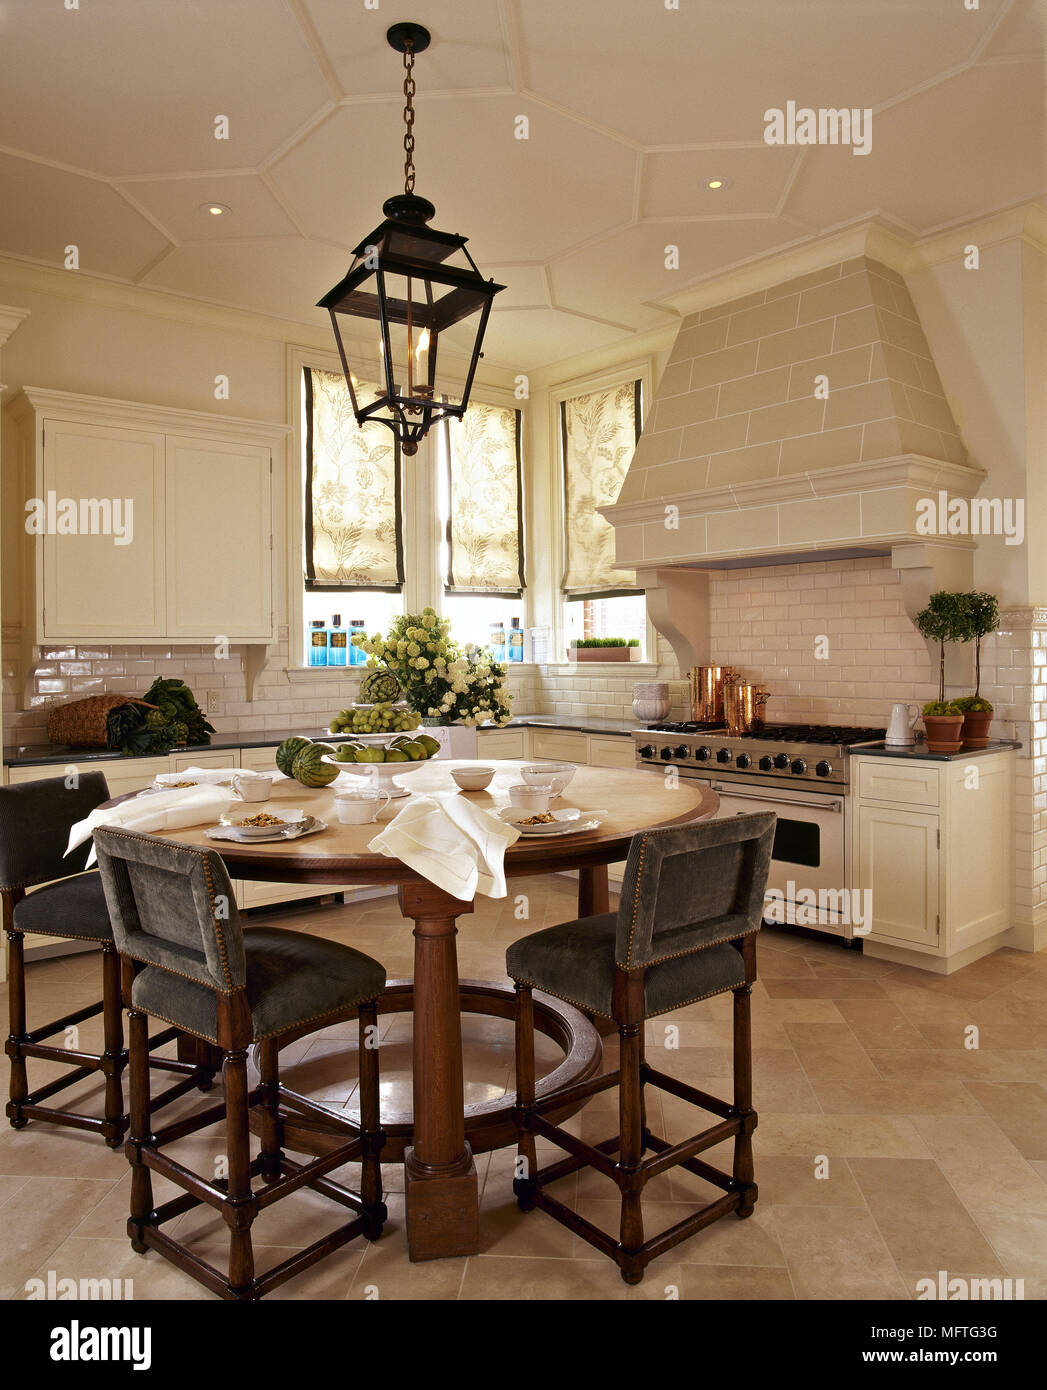 Country Kitchen Dining Area Cream Units Round Table Chairs Stone Fireplace Recess Interiors Kitchens Rooms Diner Diners Period Features